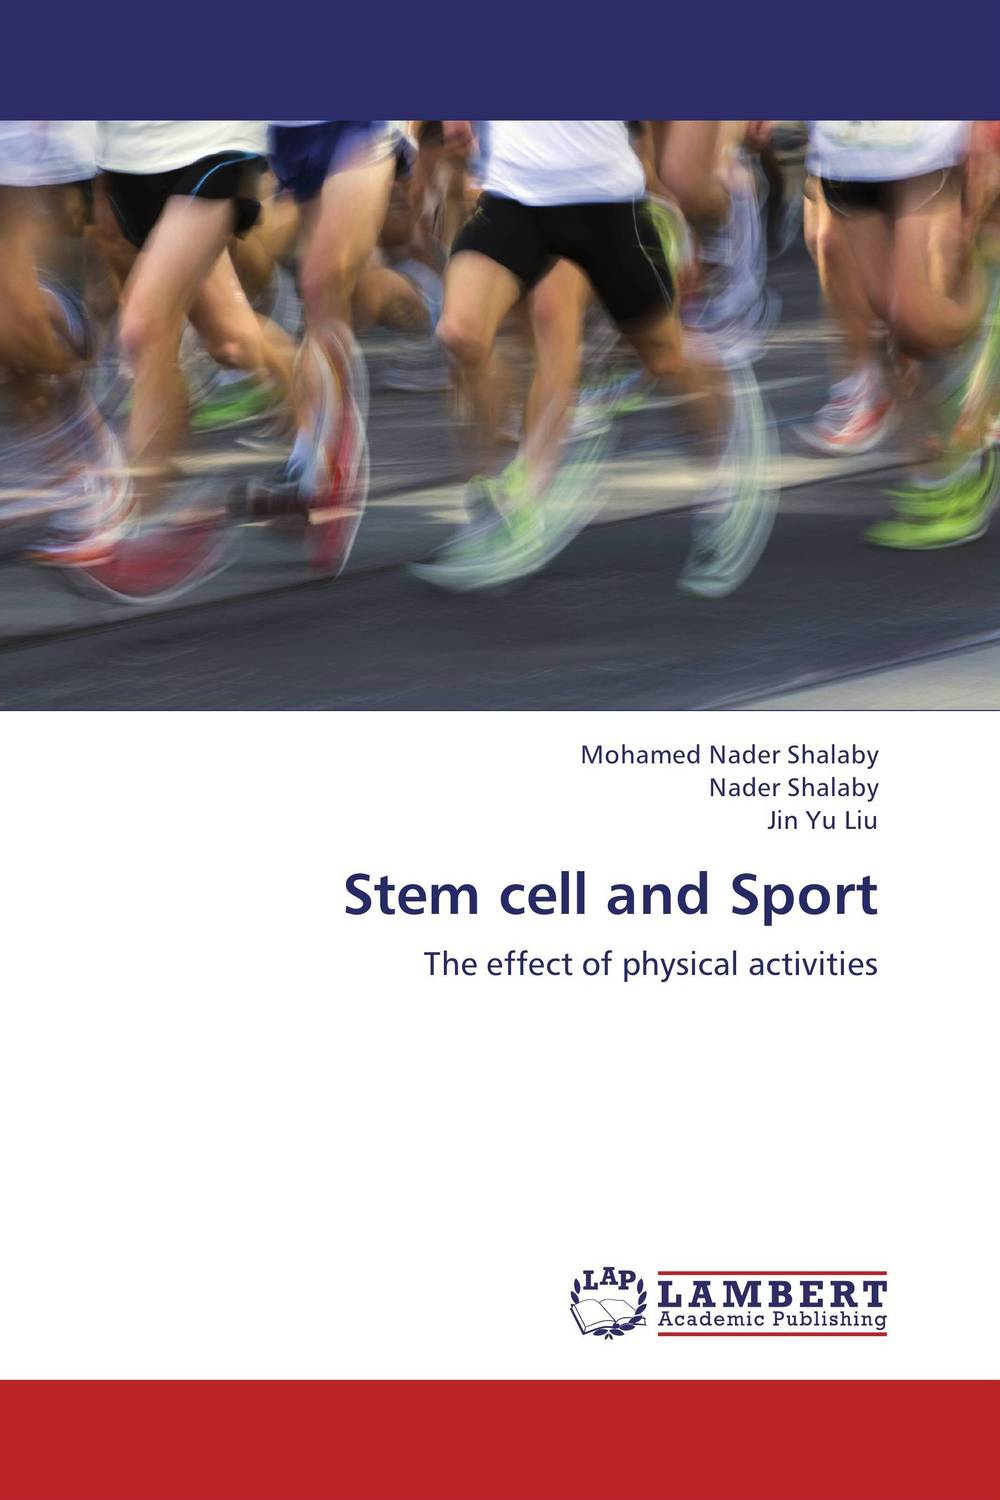 все цены на Stem cell and Sport онлайн